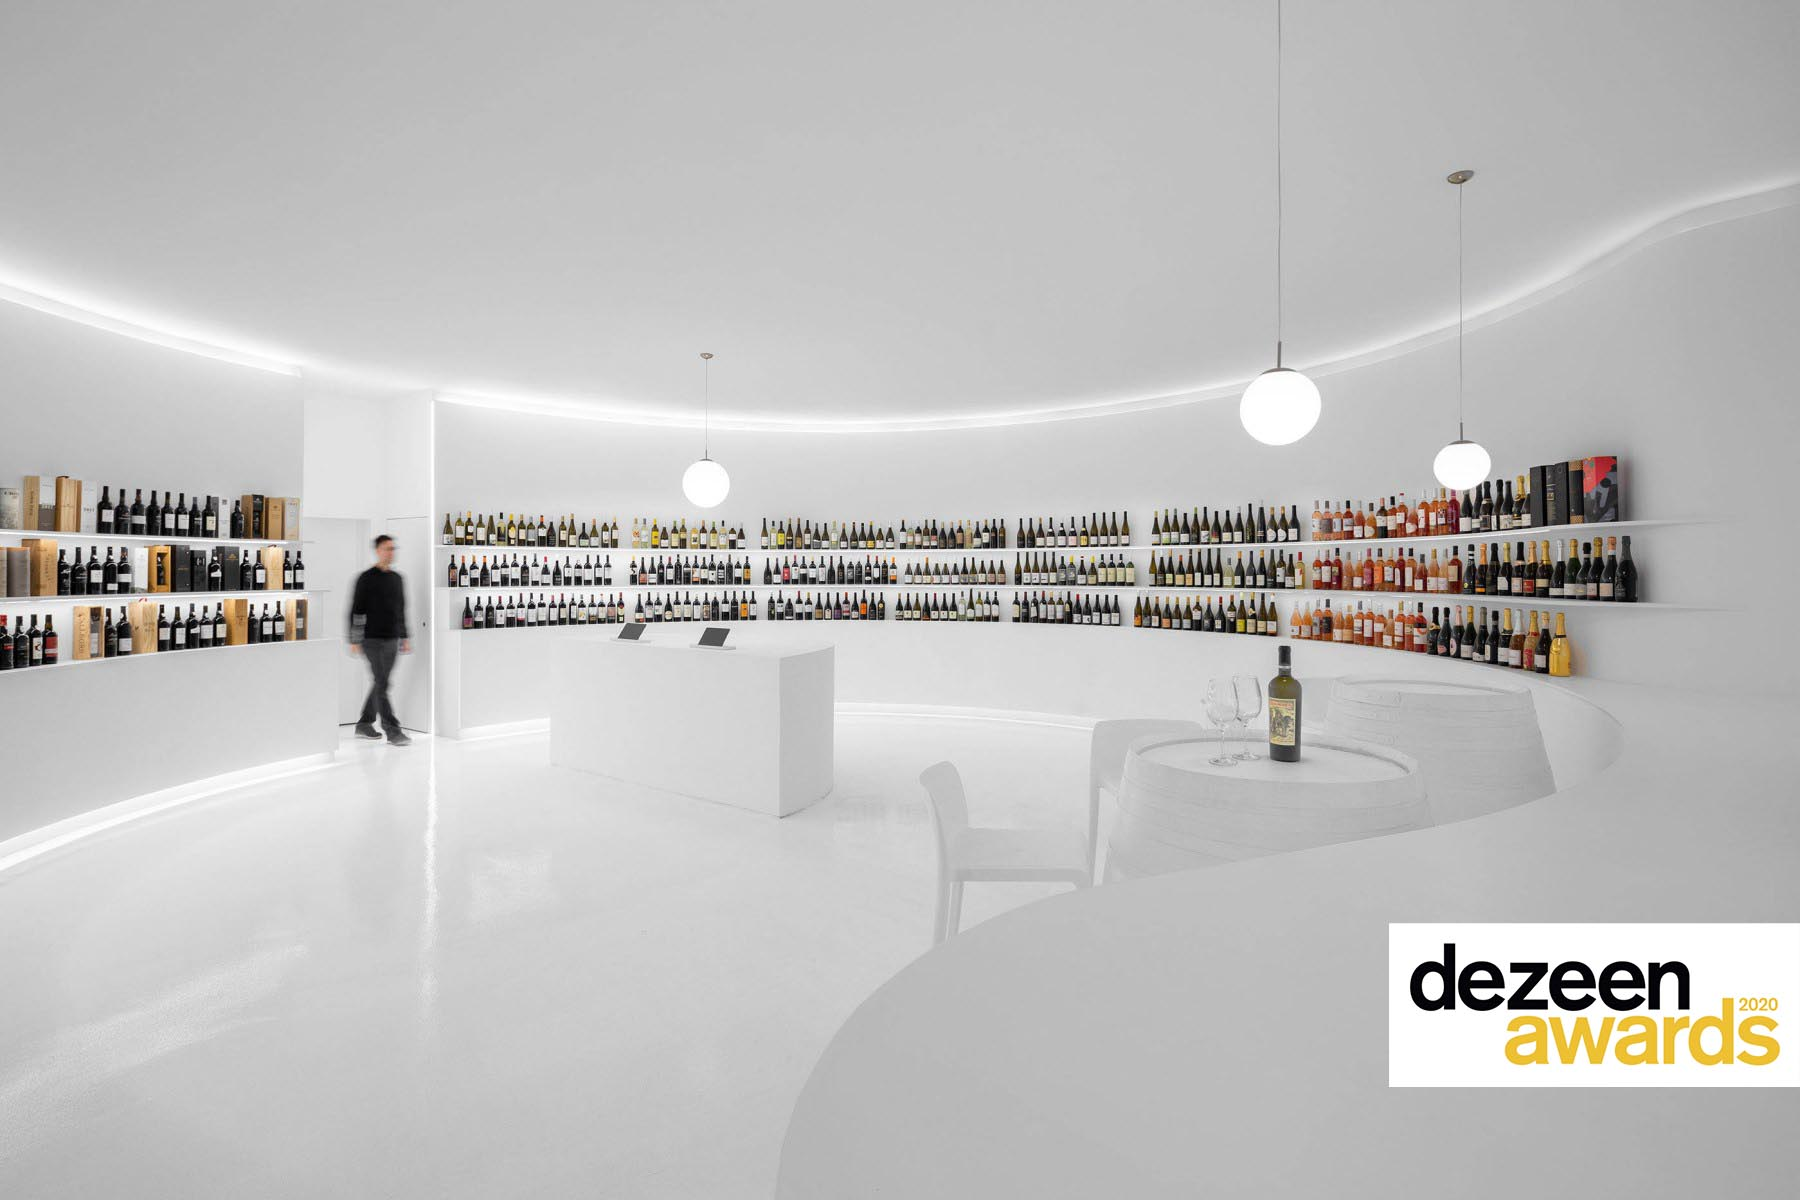 porto architects dezeen awards 2020